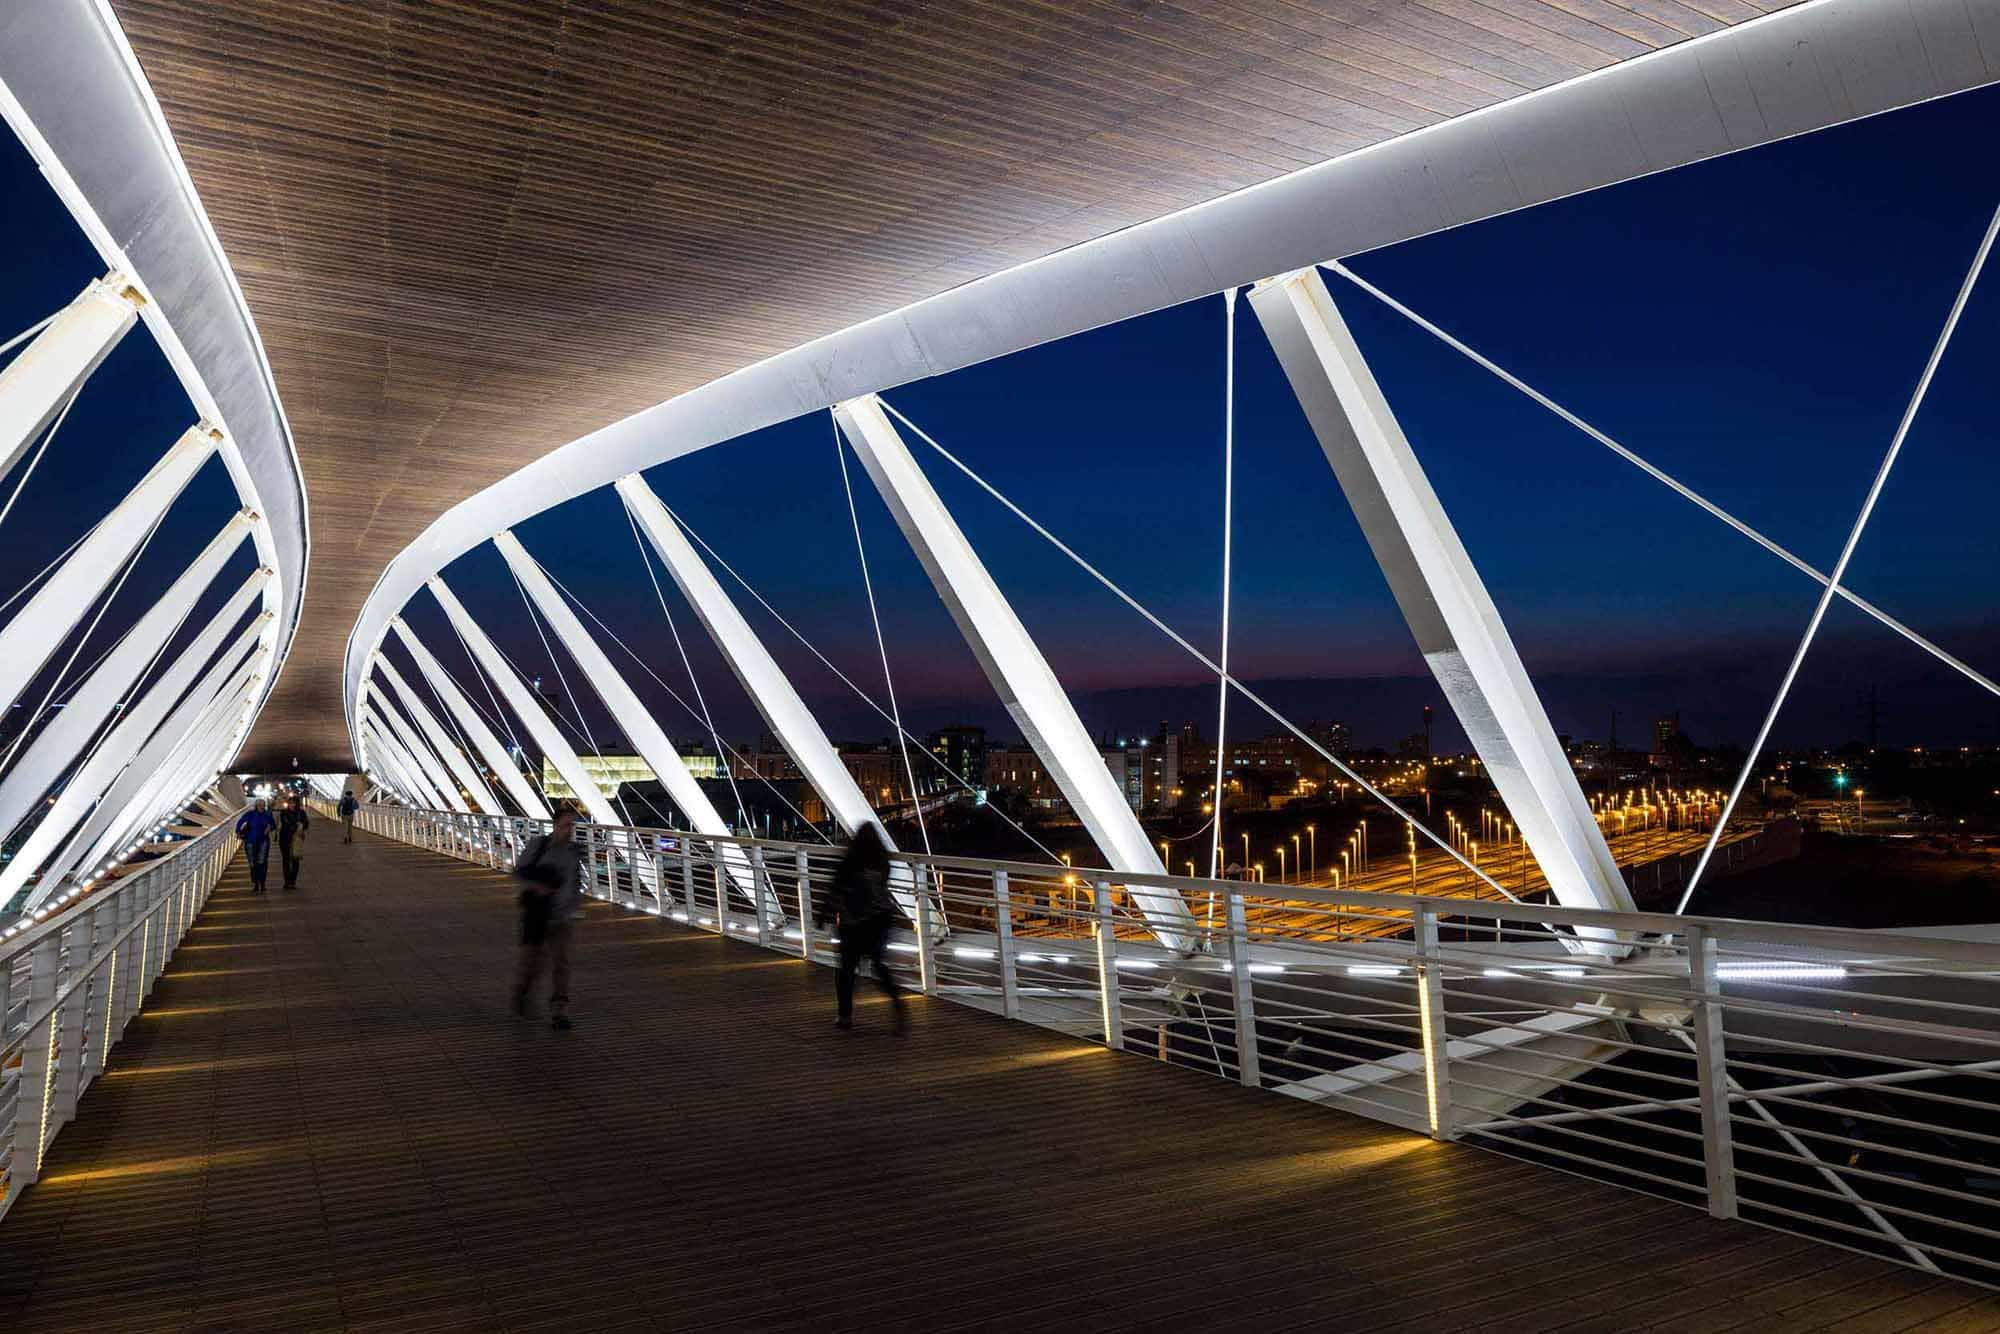 Bowstring trusses, bridges and timber structures